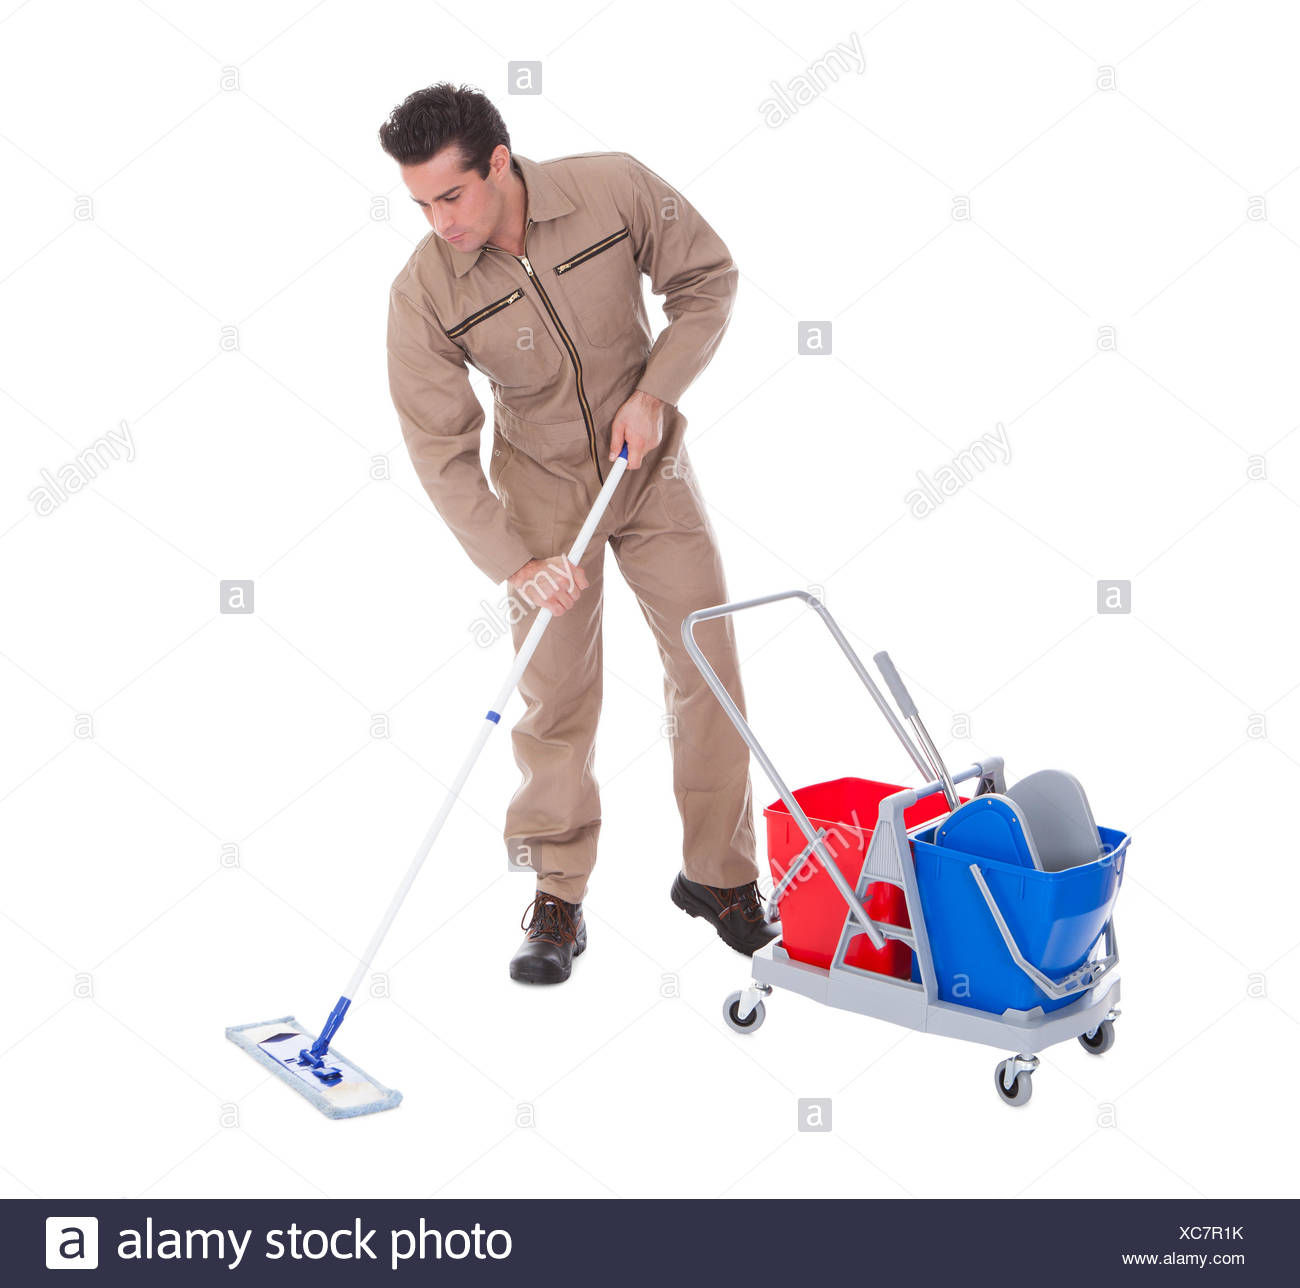 Young Male Sweeper Cleaning Floor On White Background Stock Photo 1300x1288